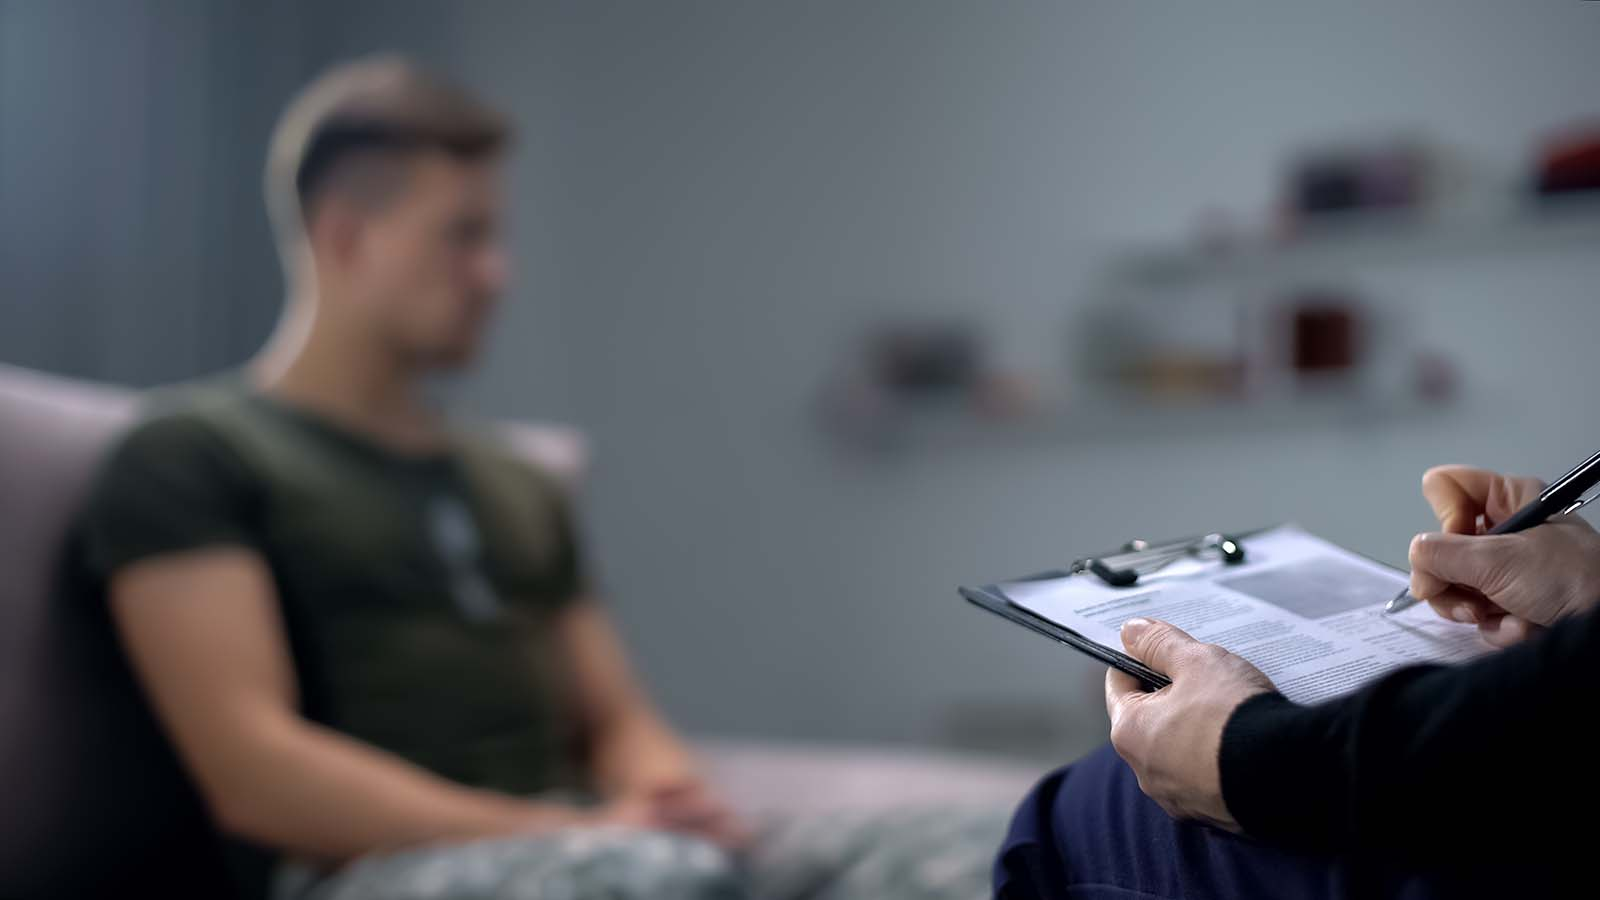 Service member sits on couch while a counselor takes notes. The counselor is sitting across from the service member.